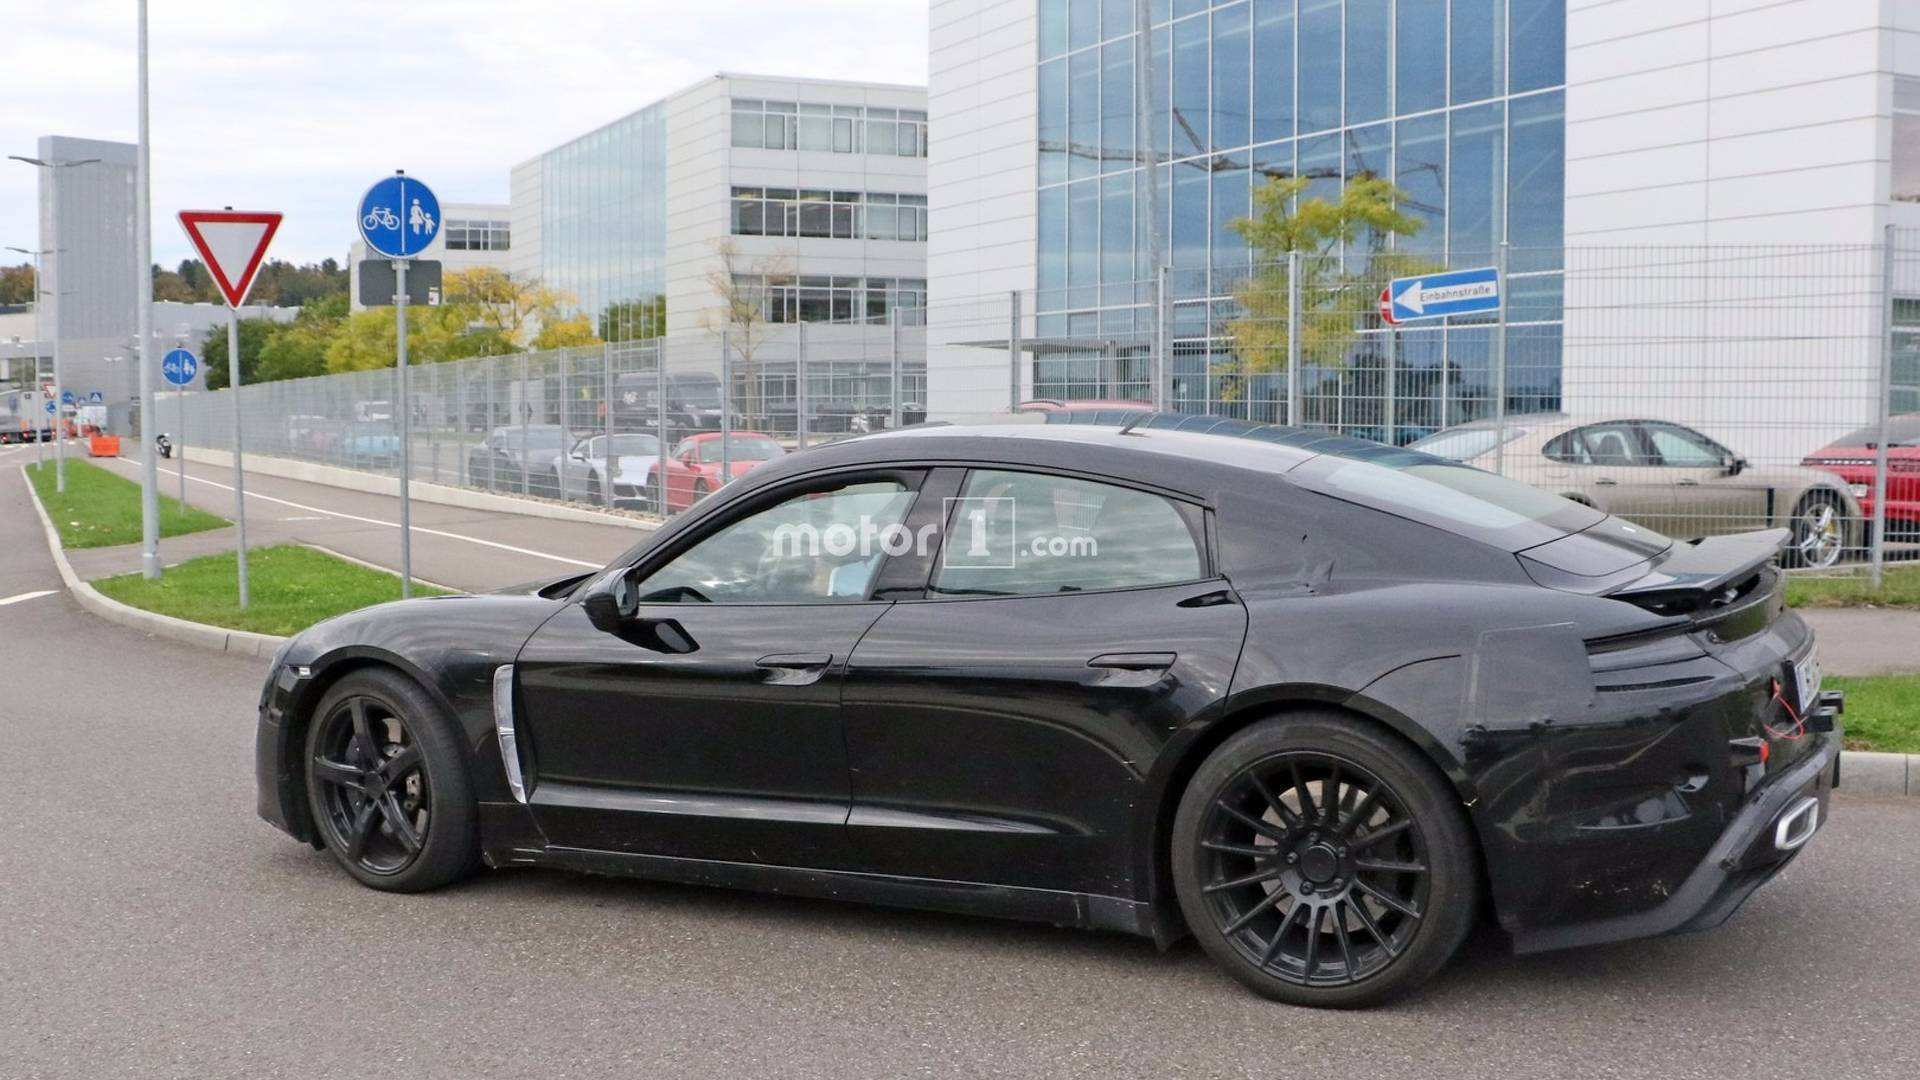 95 All New 2020 Porsche Mission E Electric Sedan Spied Testing Alongside Teslas Concept And Review